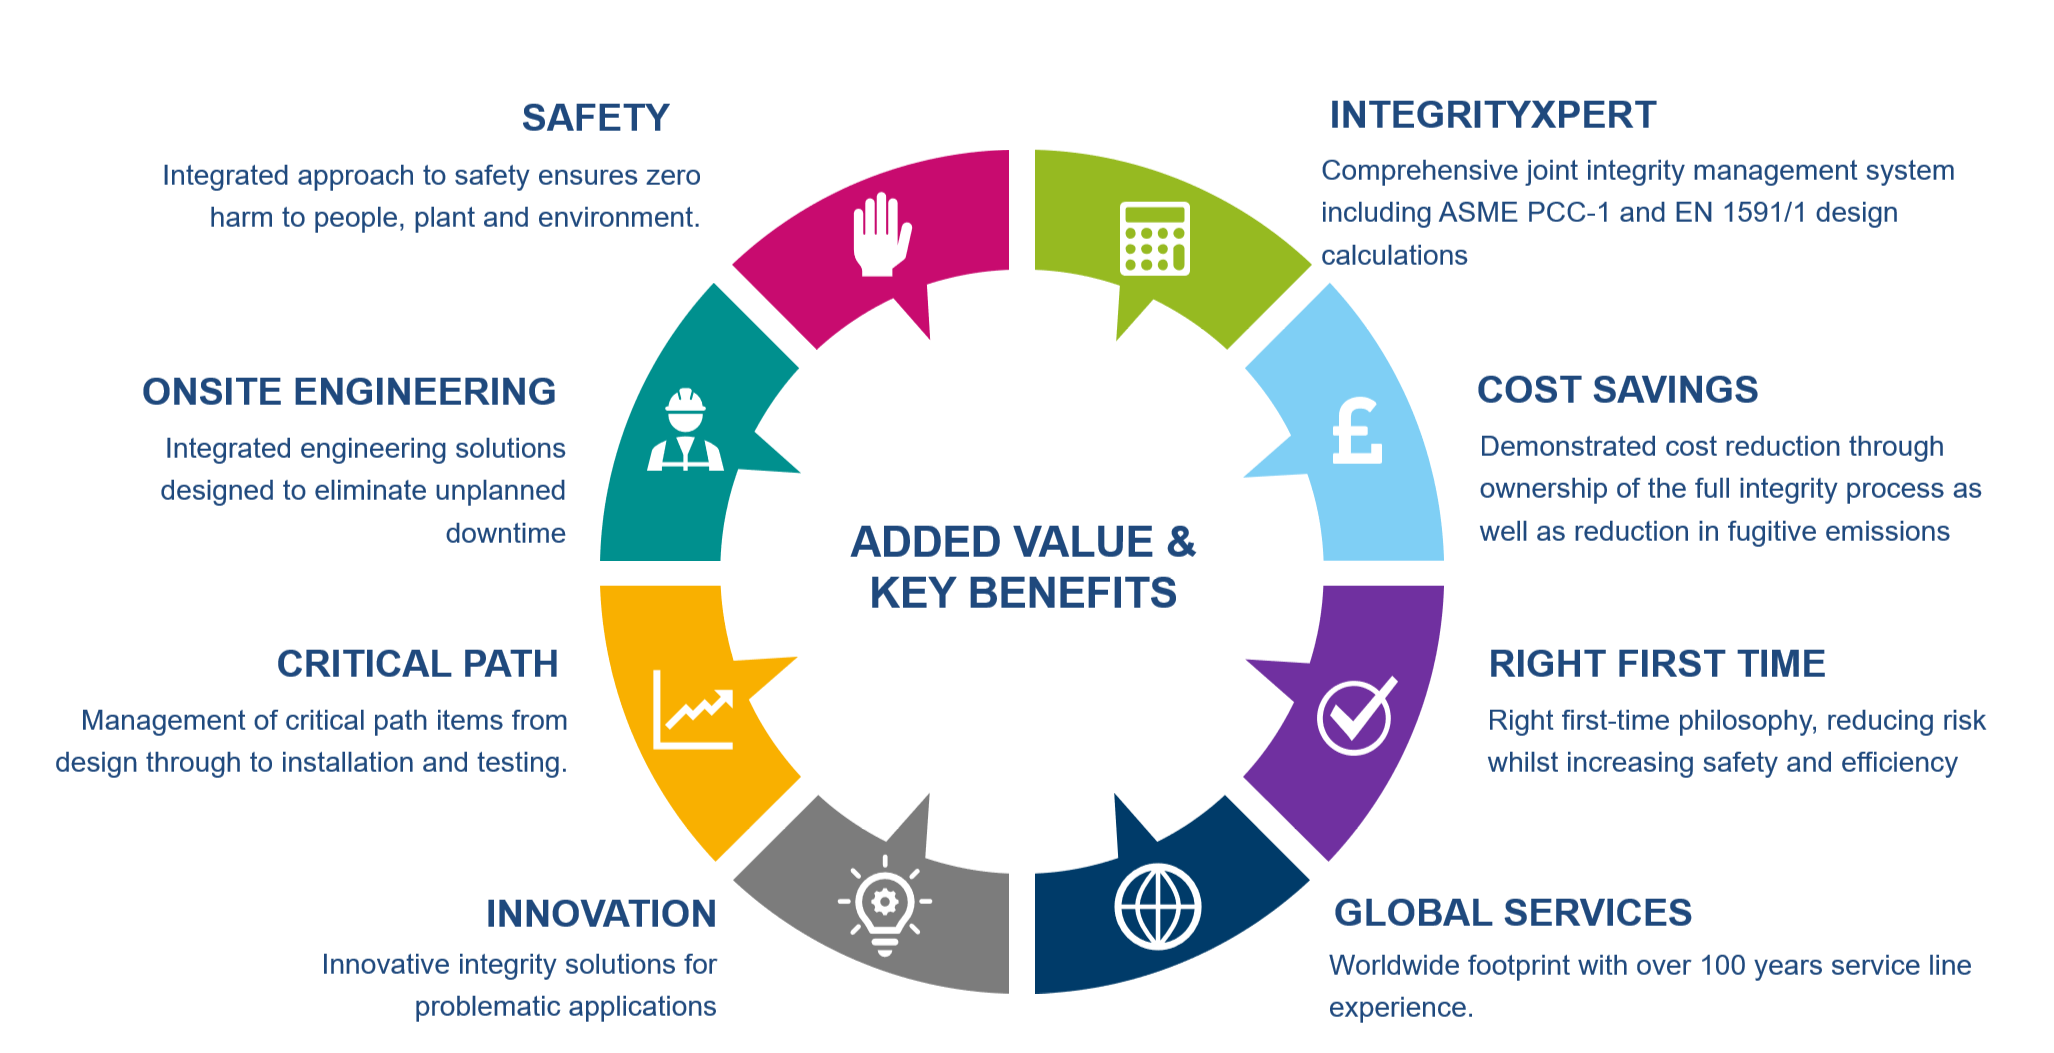 Vale and key benefits infographic